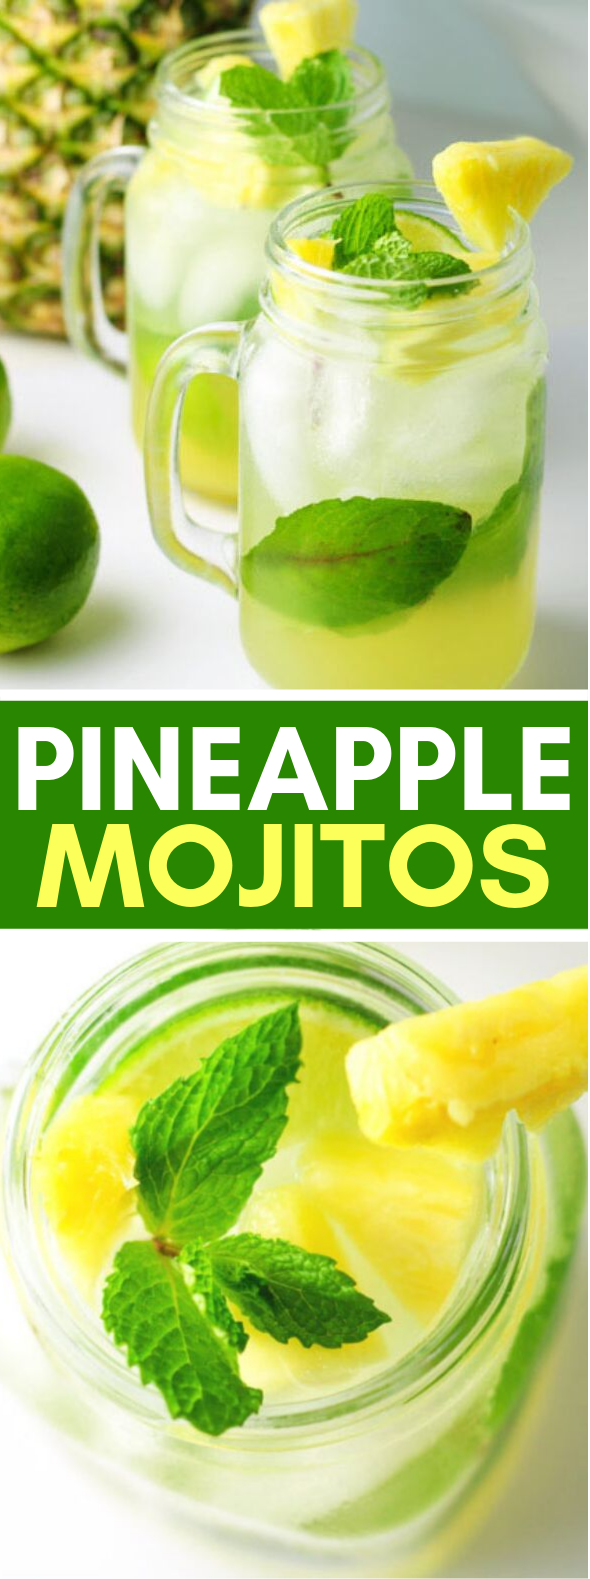 PINEAPPLE MOJITOS #drinks #cocktail